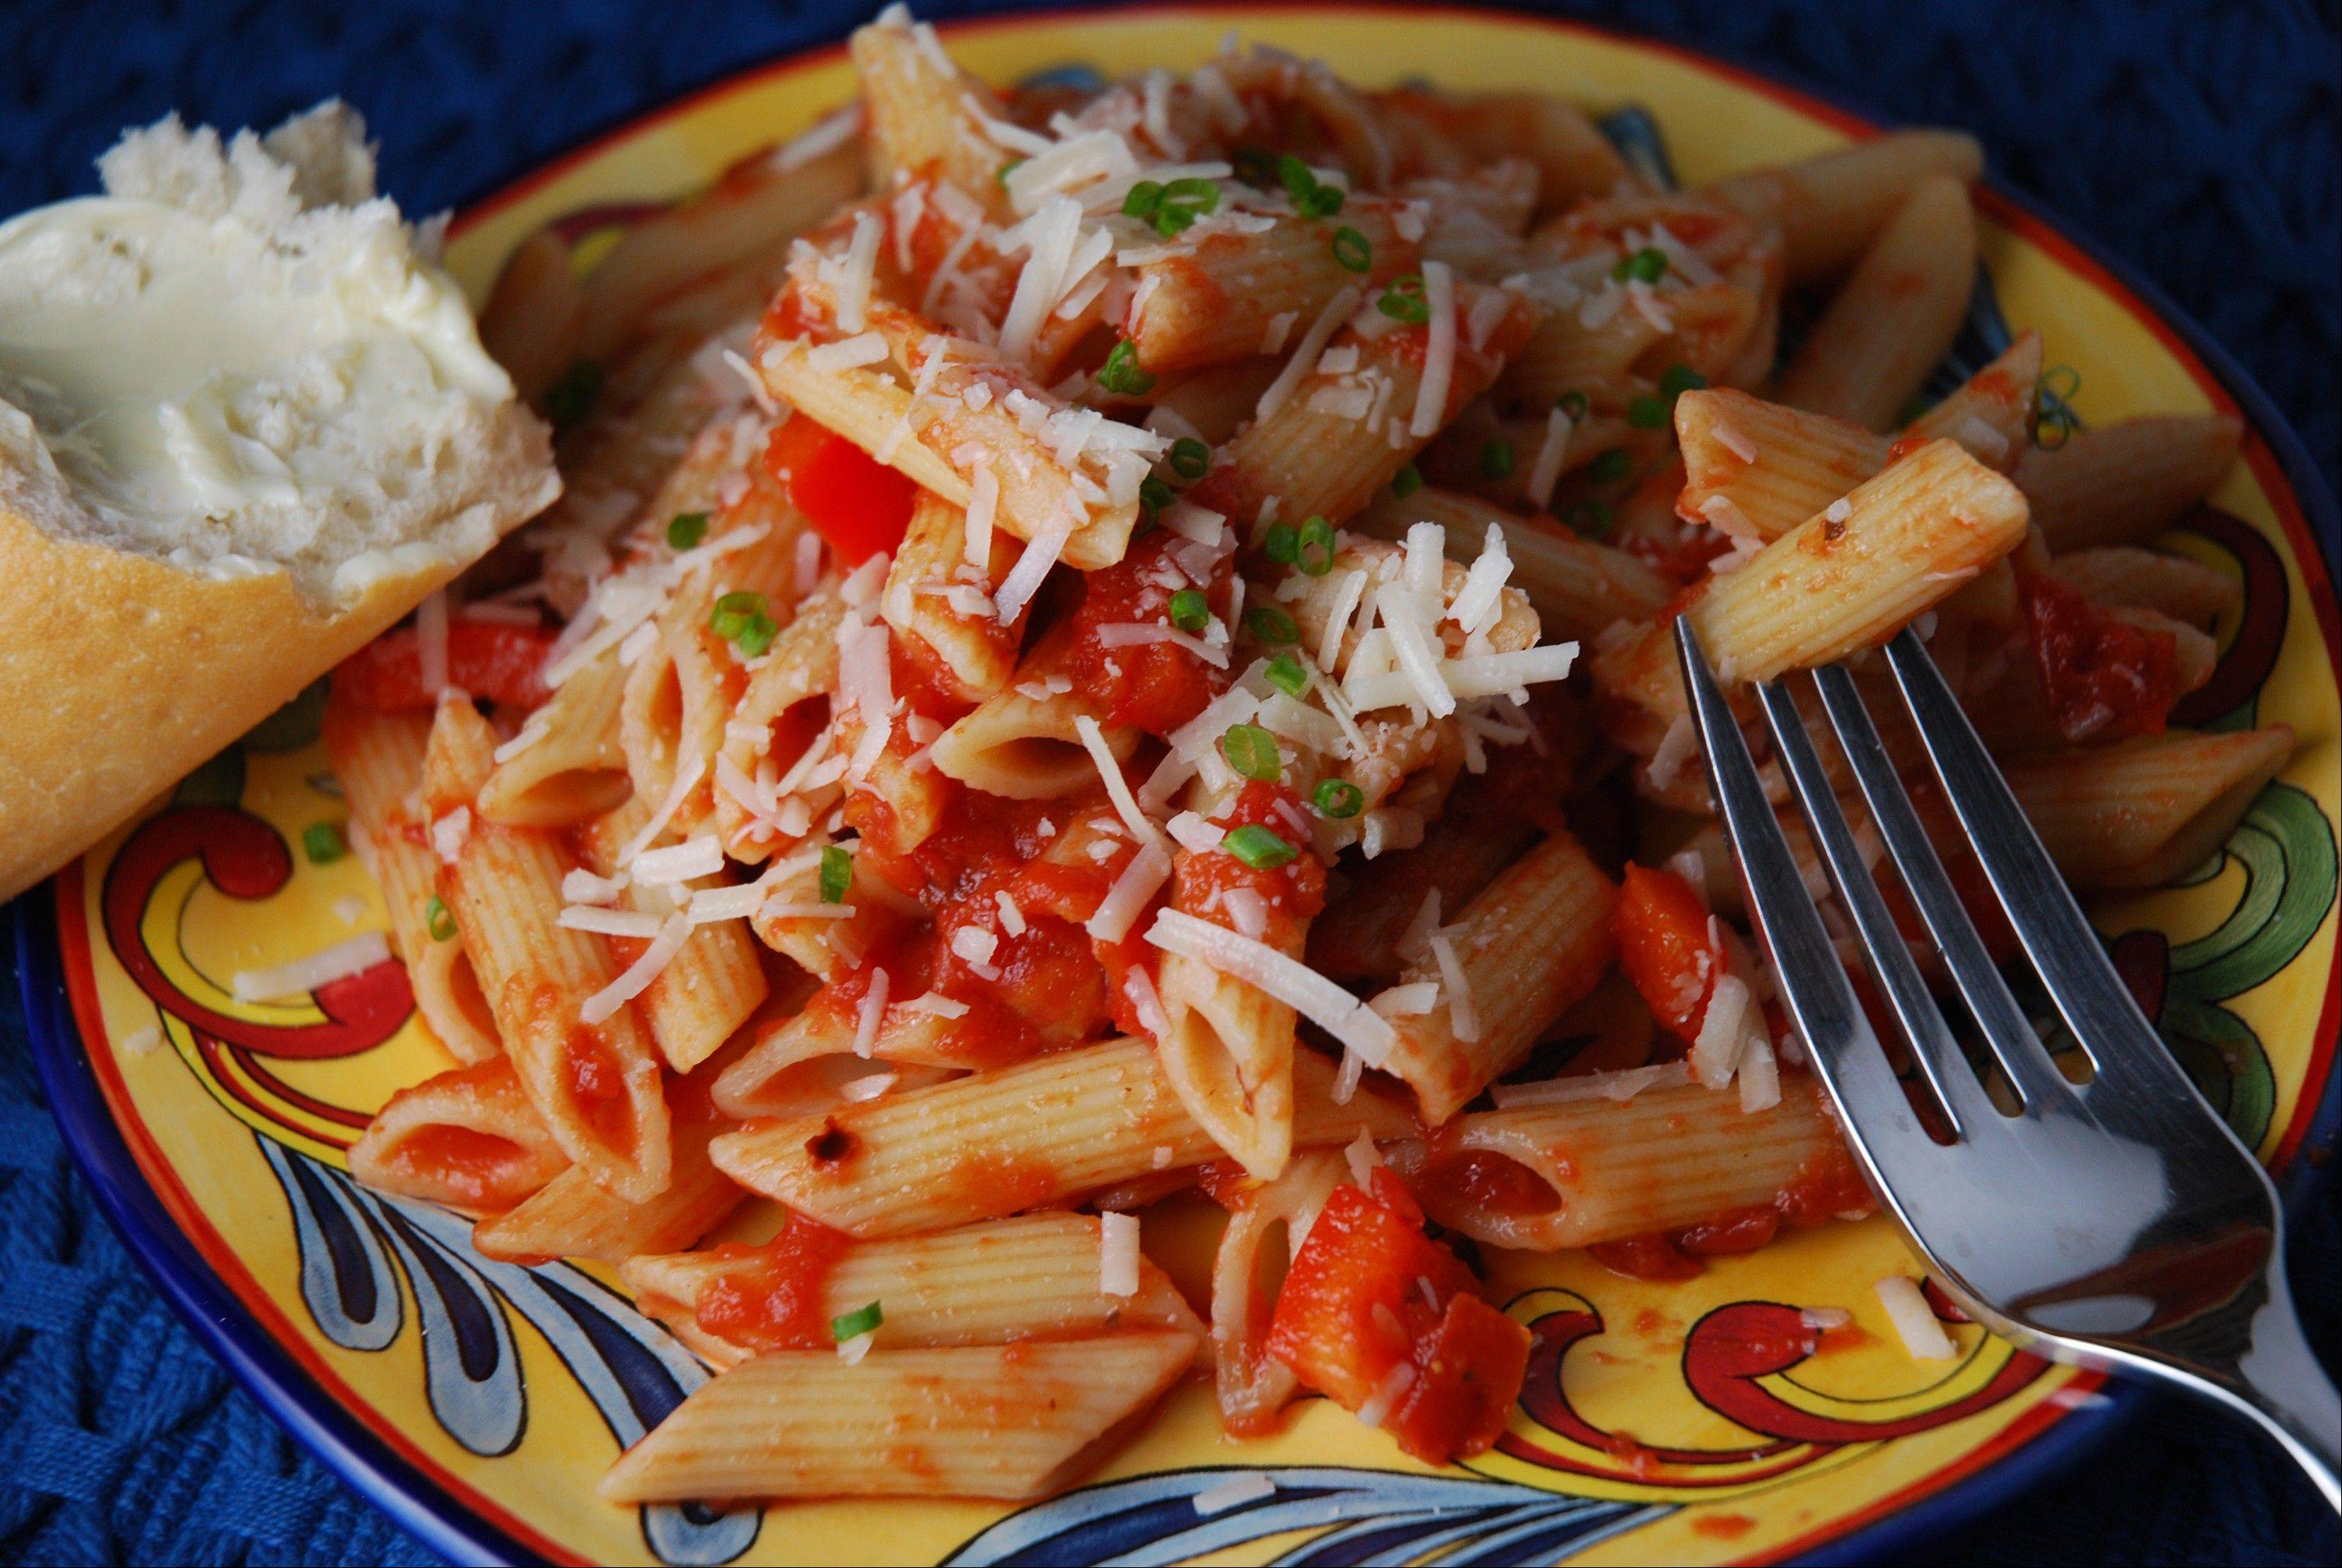 Classic Italian Pasta sauce comes together in a mere 20 minutes.